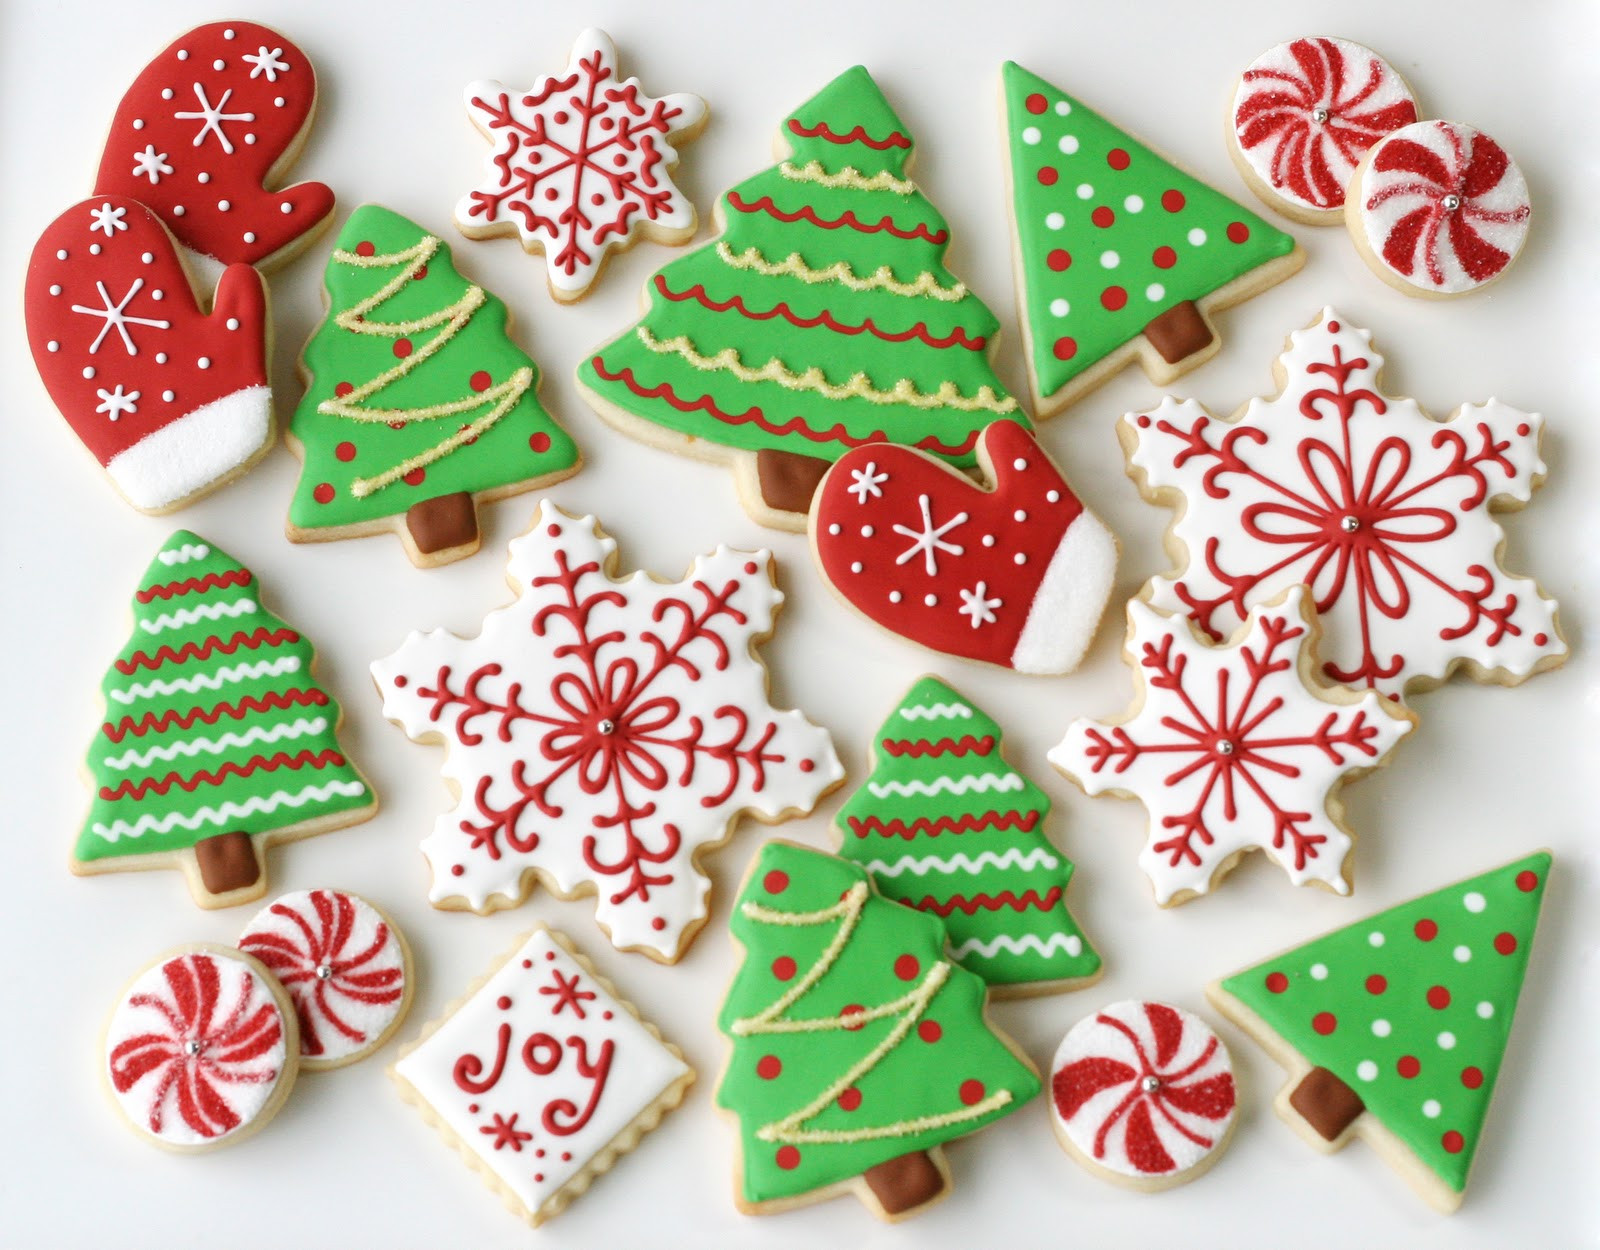 Pictures Of Christmas Cookies Decorated  Christmas Cookies Galore Glorious Treats